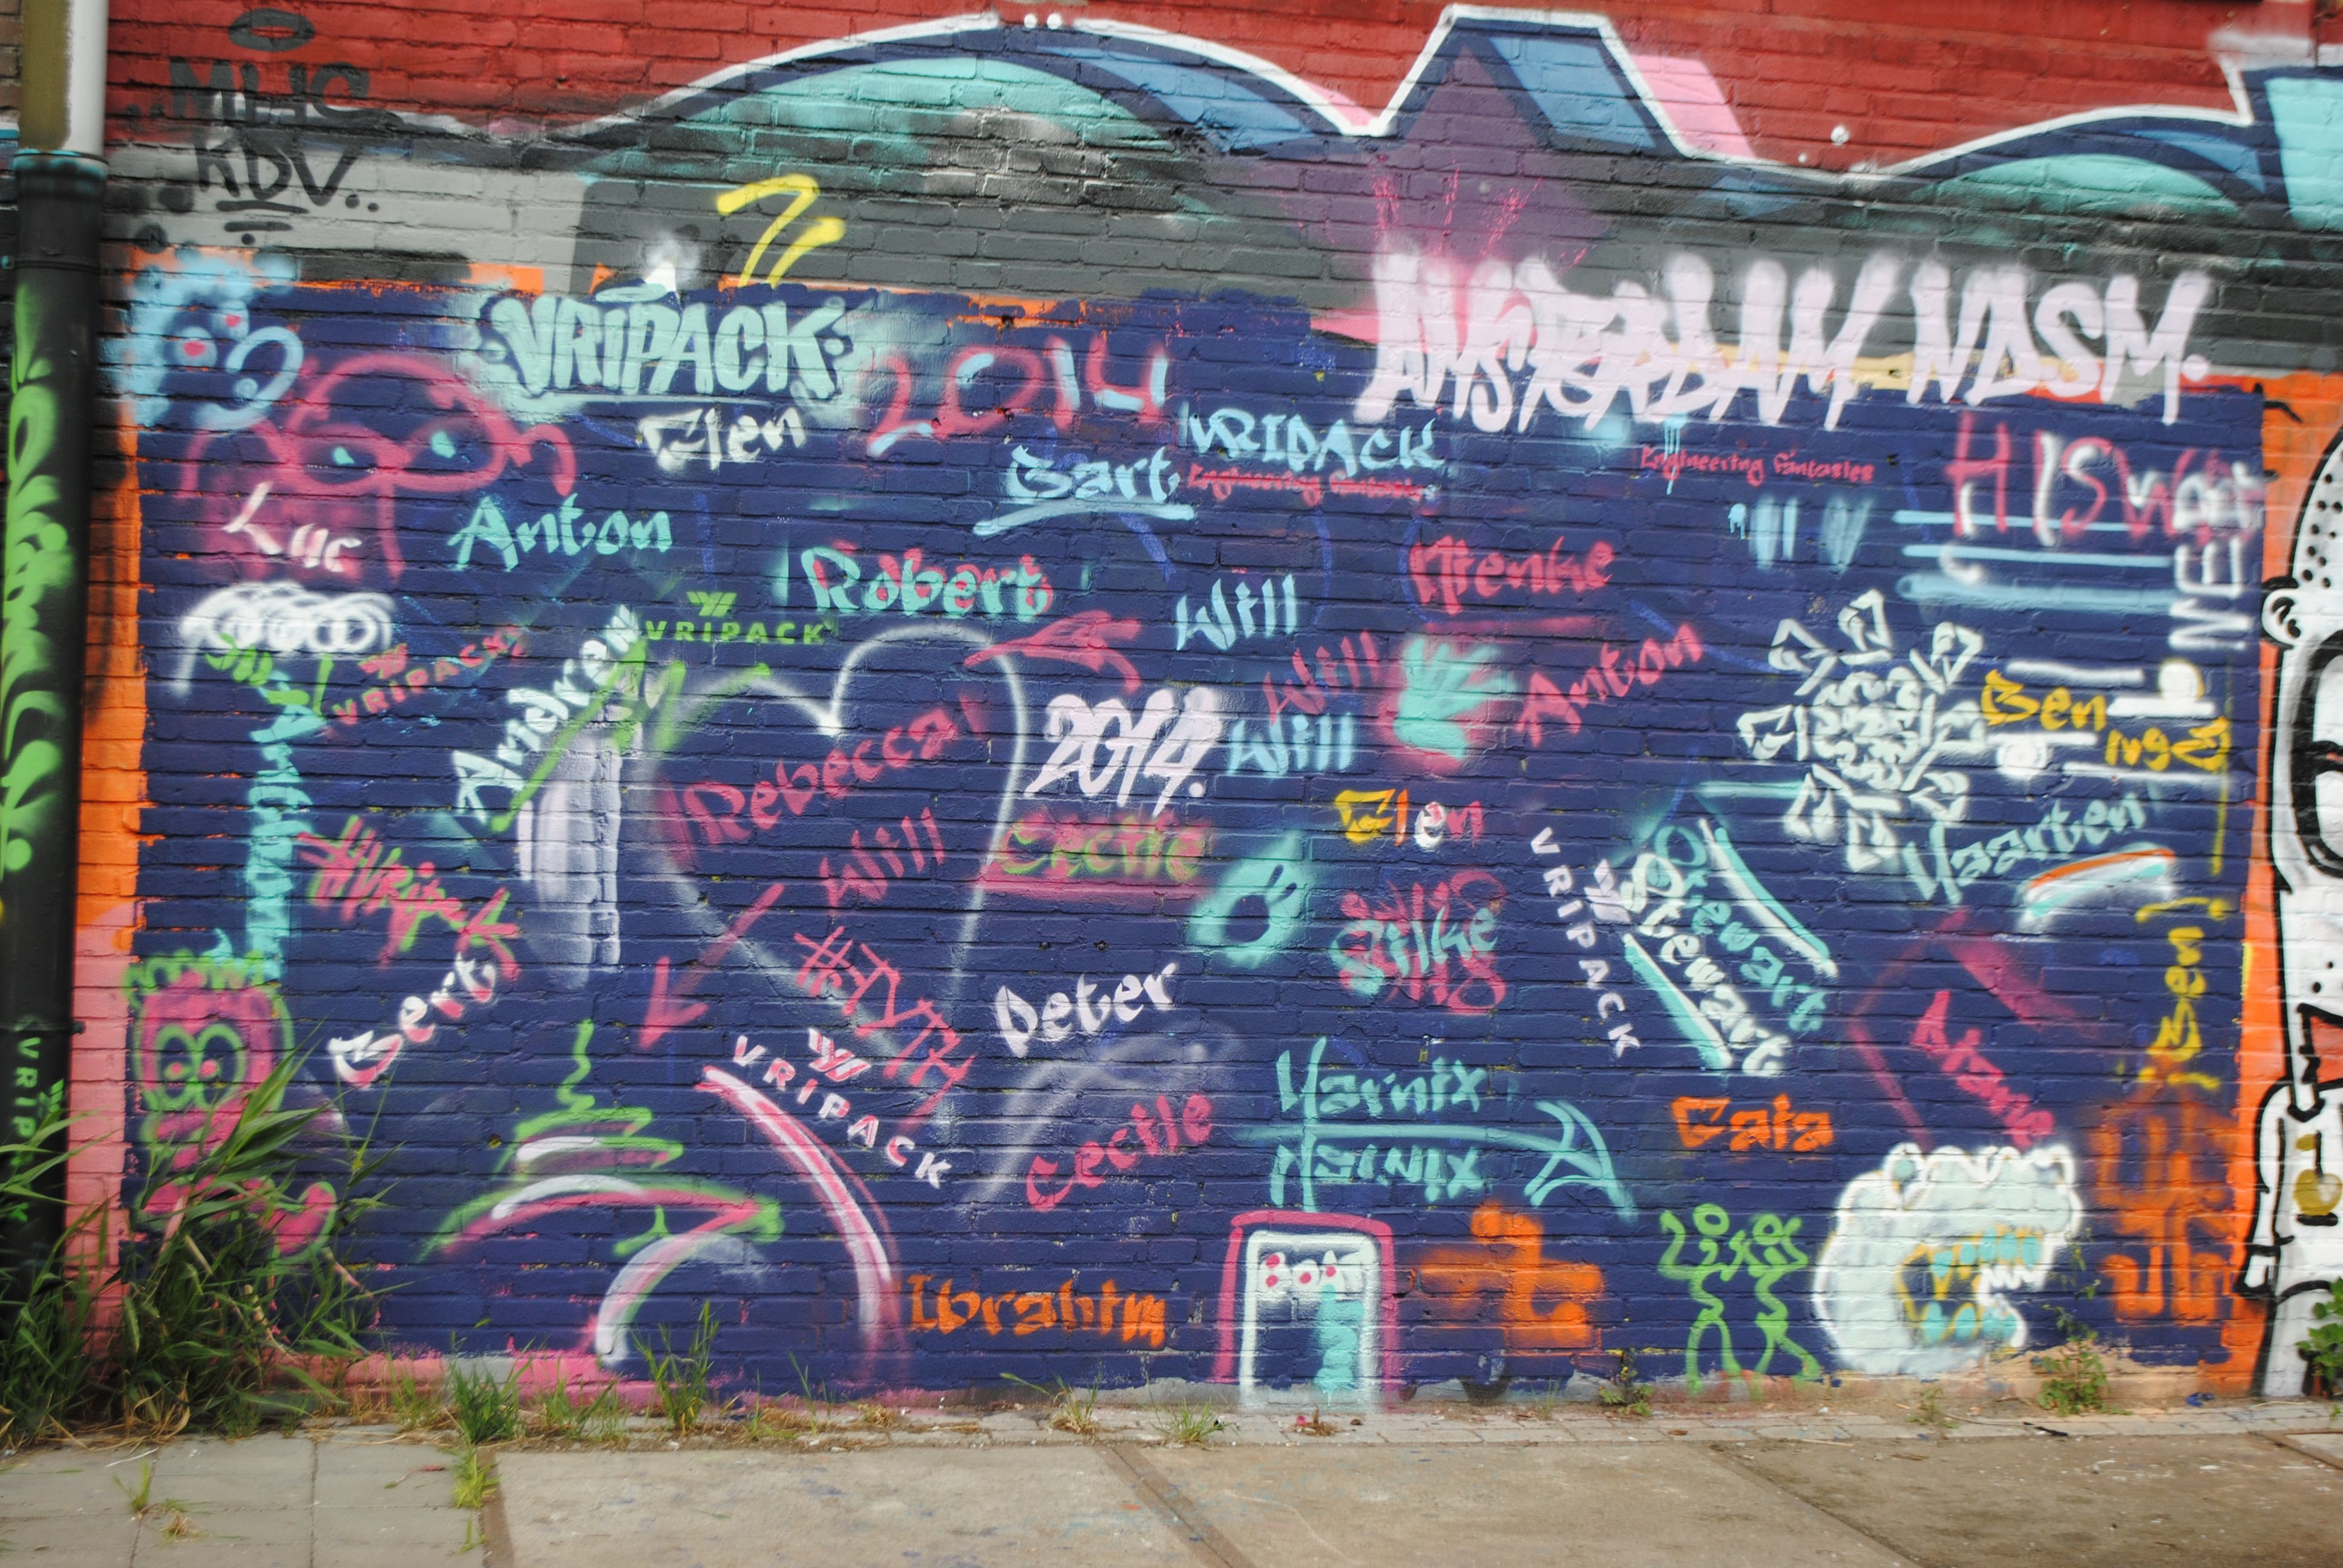 The finished 'HISWA Press Tour' Street Art Masterpiece!